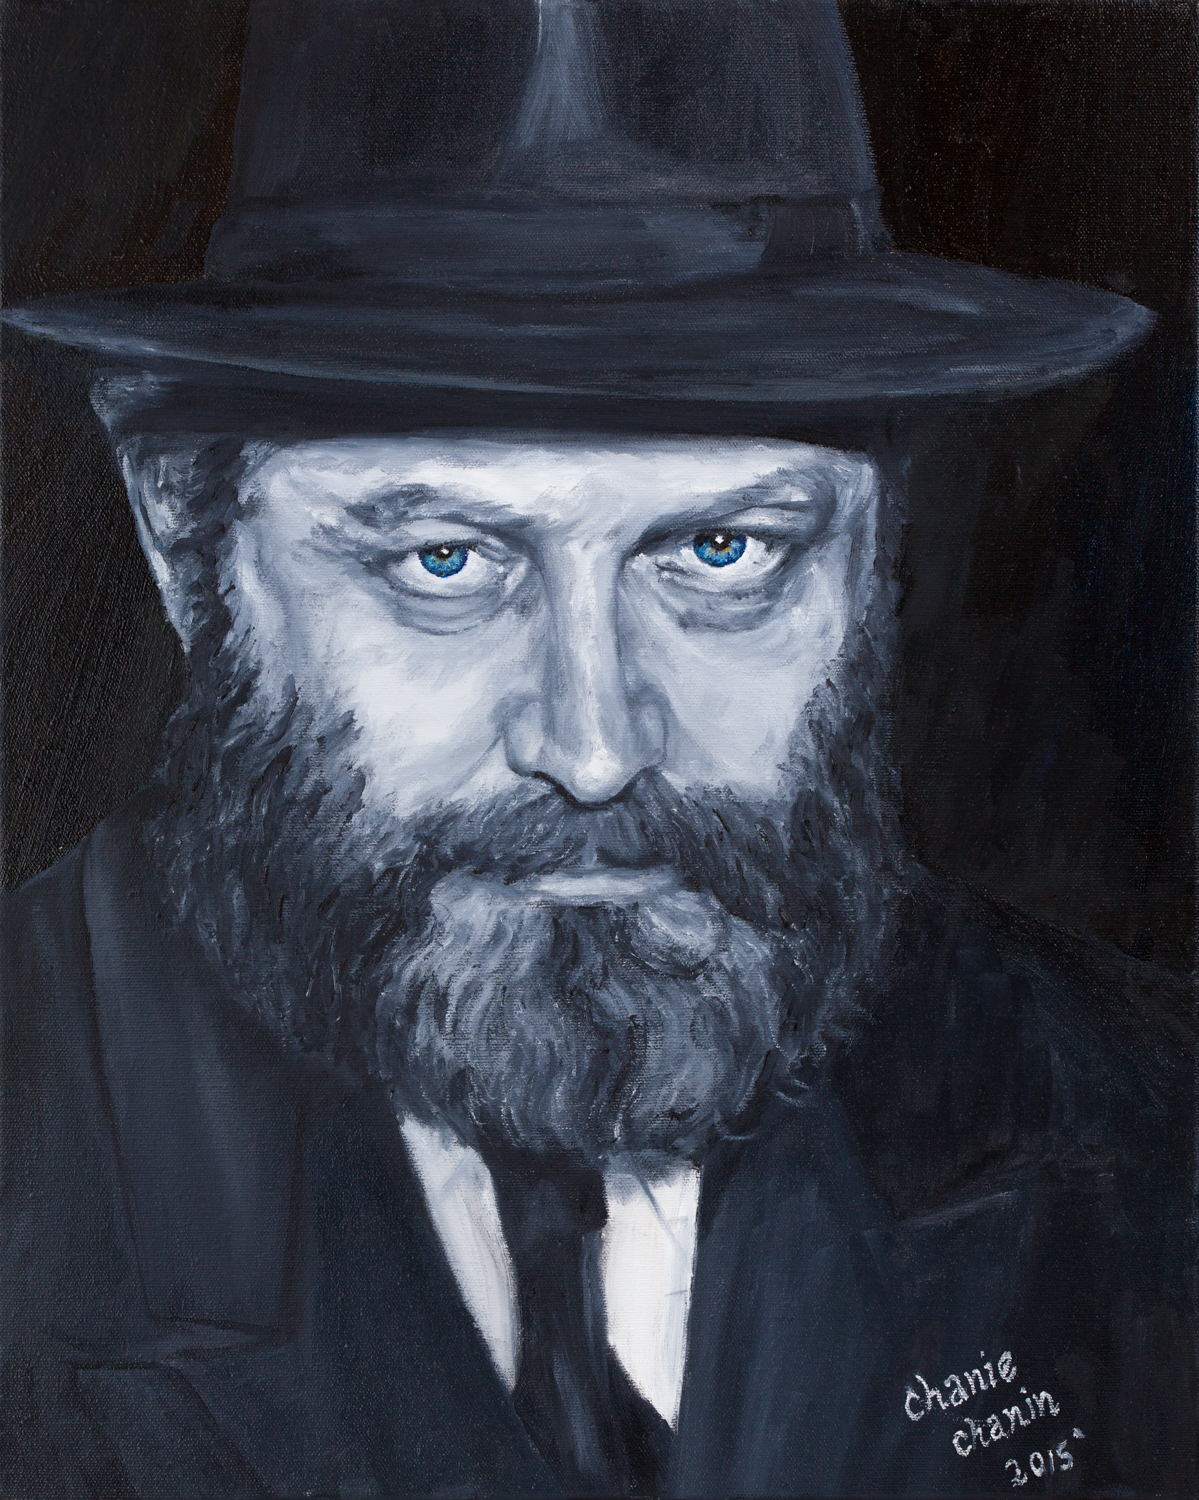 The Rebbe - Piercing eyes